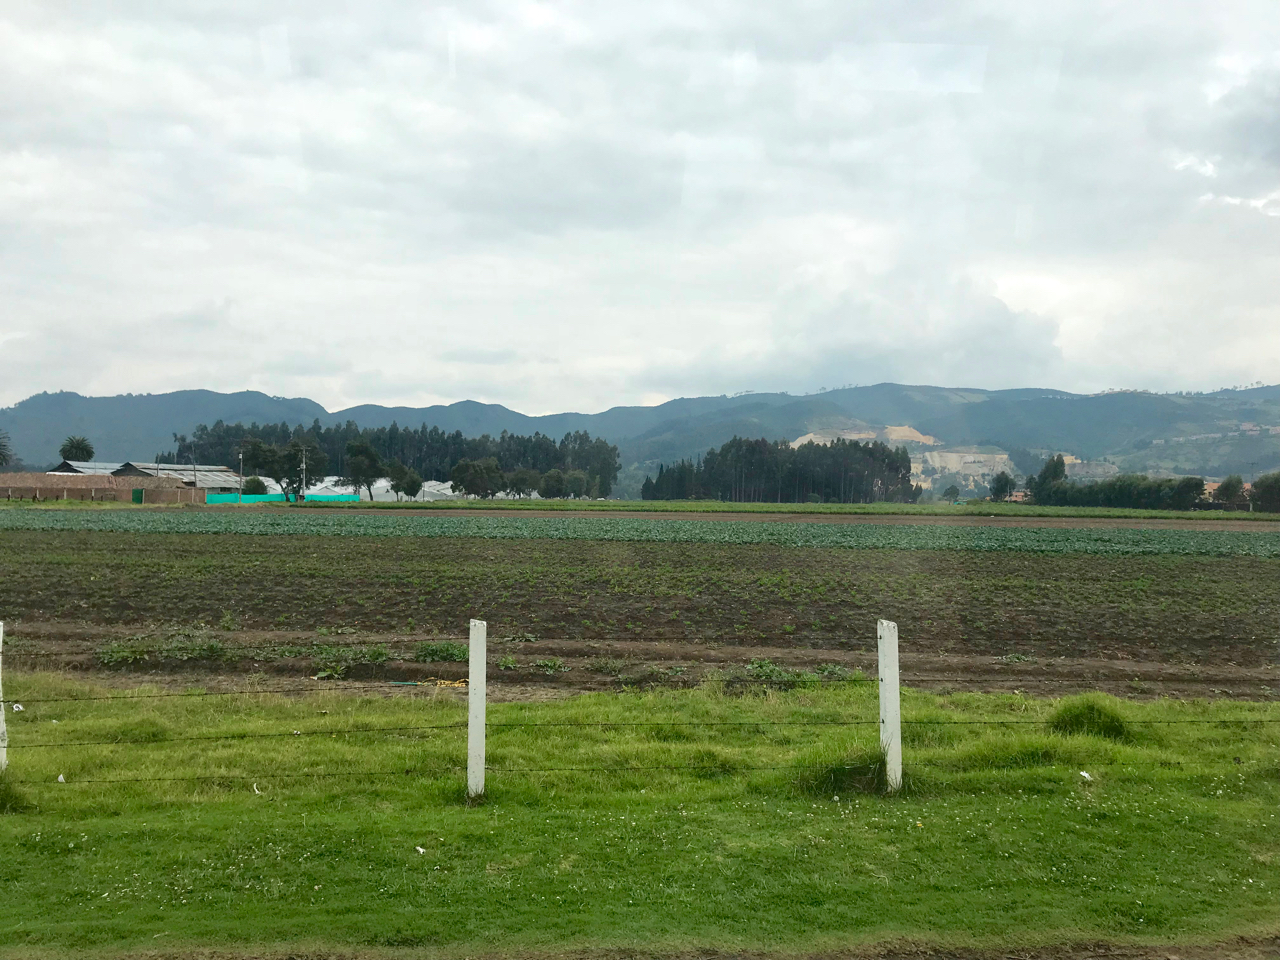 Colombian countryside with mountains and fields, view from bus from Bogota to Zipaquira